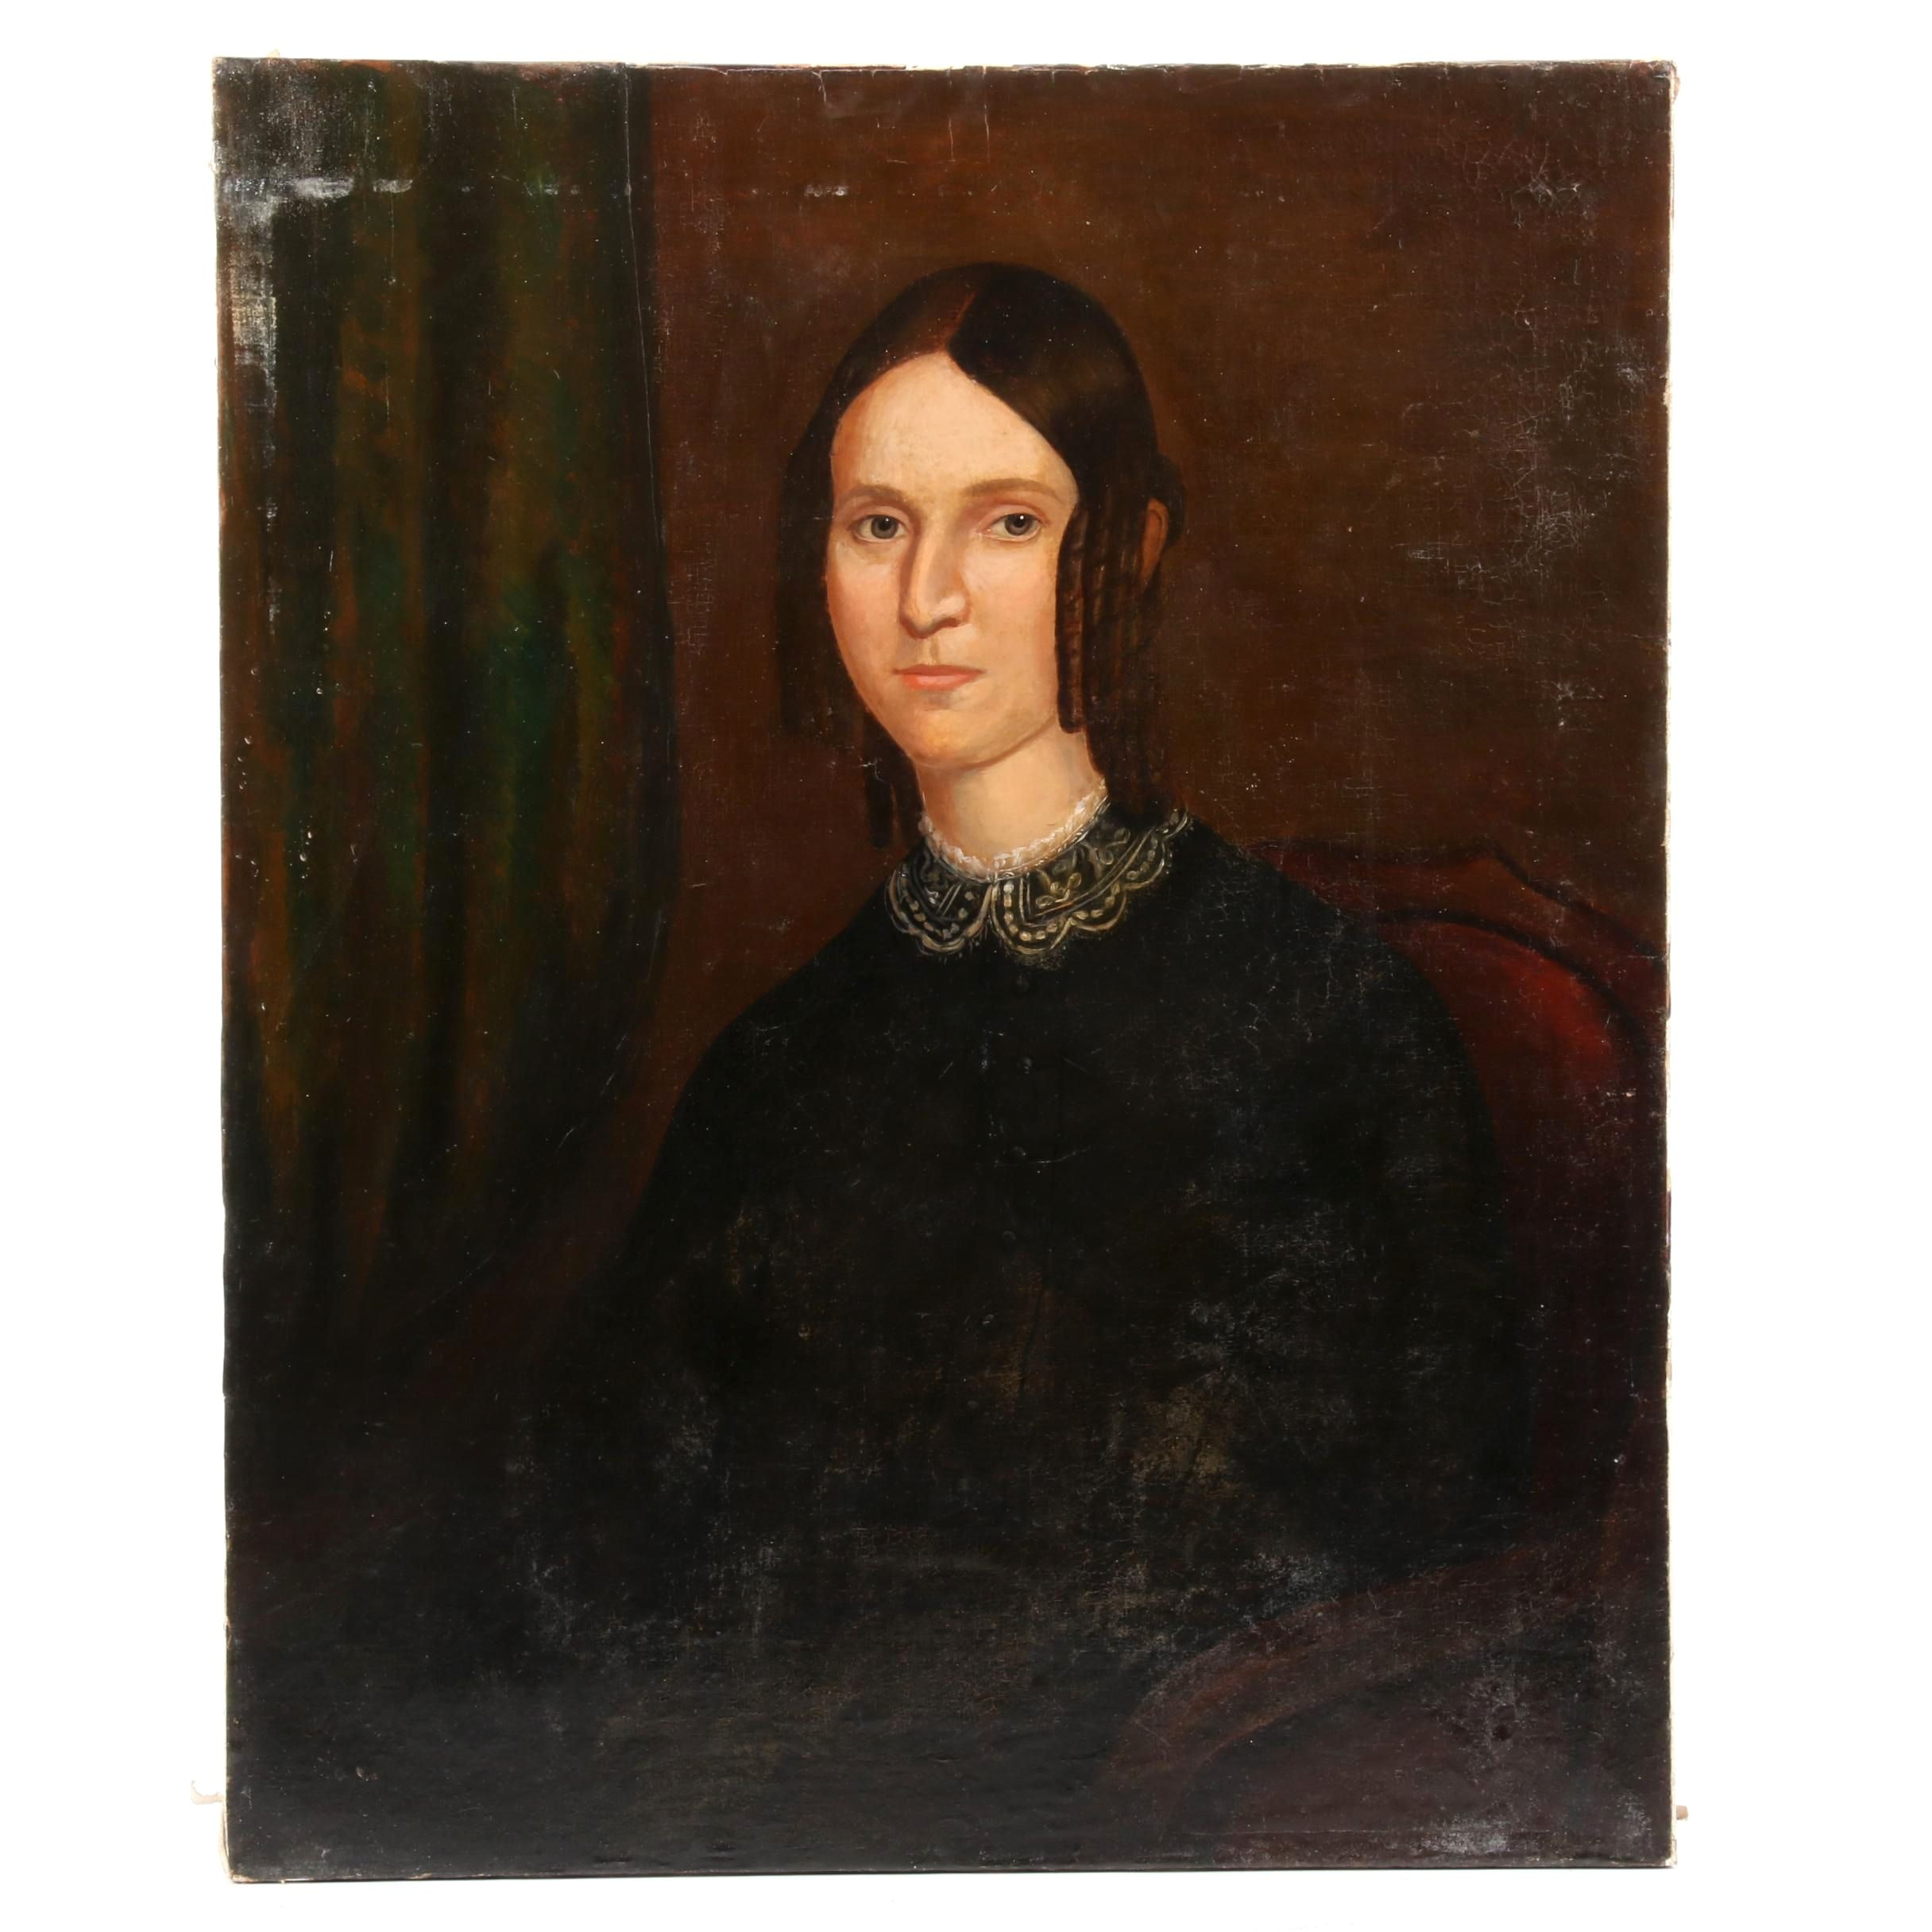 American School Portrait Painting of Woman in Black